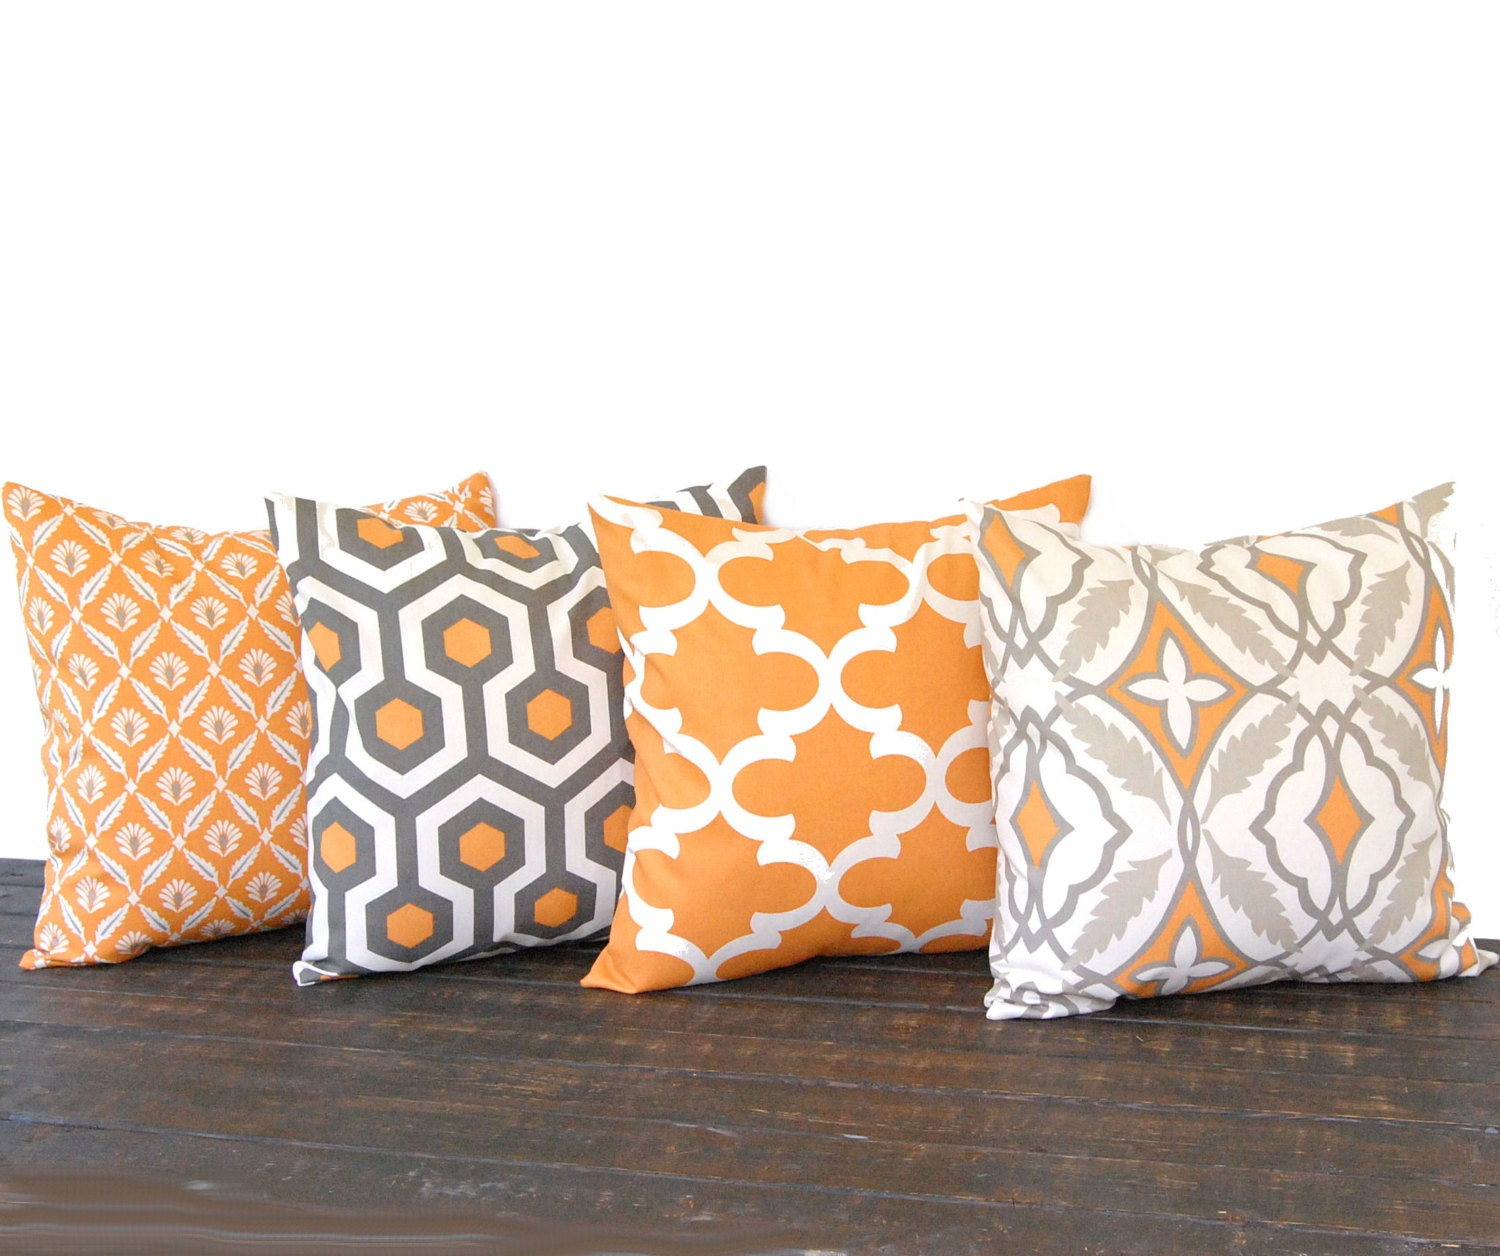 Throw Pillow Etsy : Throw pillow covers Set Of Four pumpkin orange by ThePillowPeople